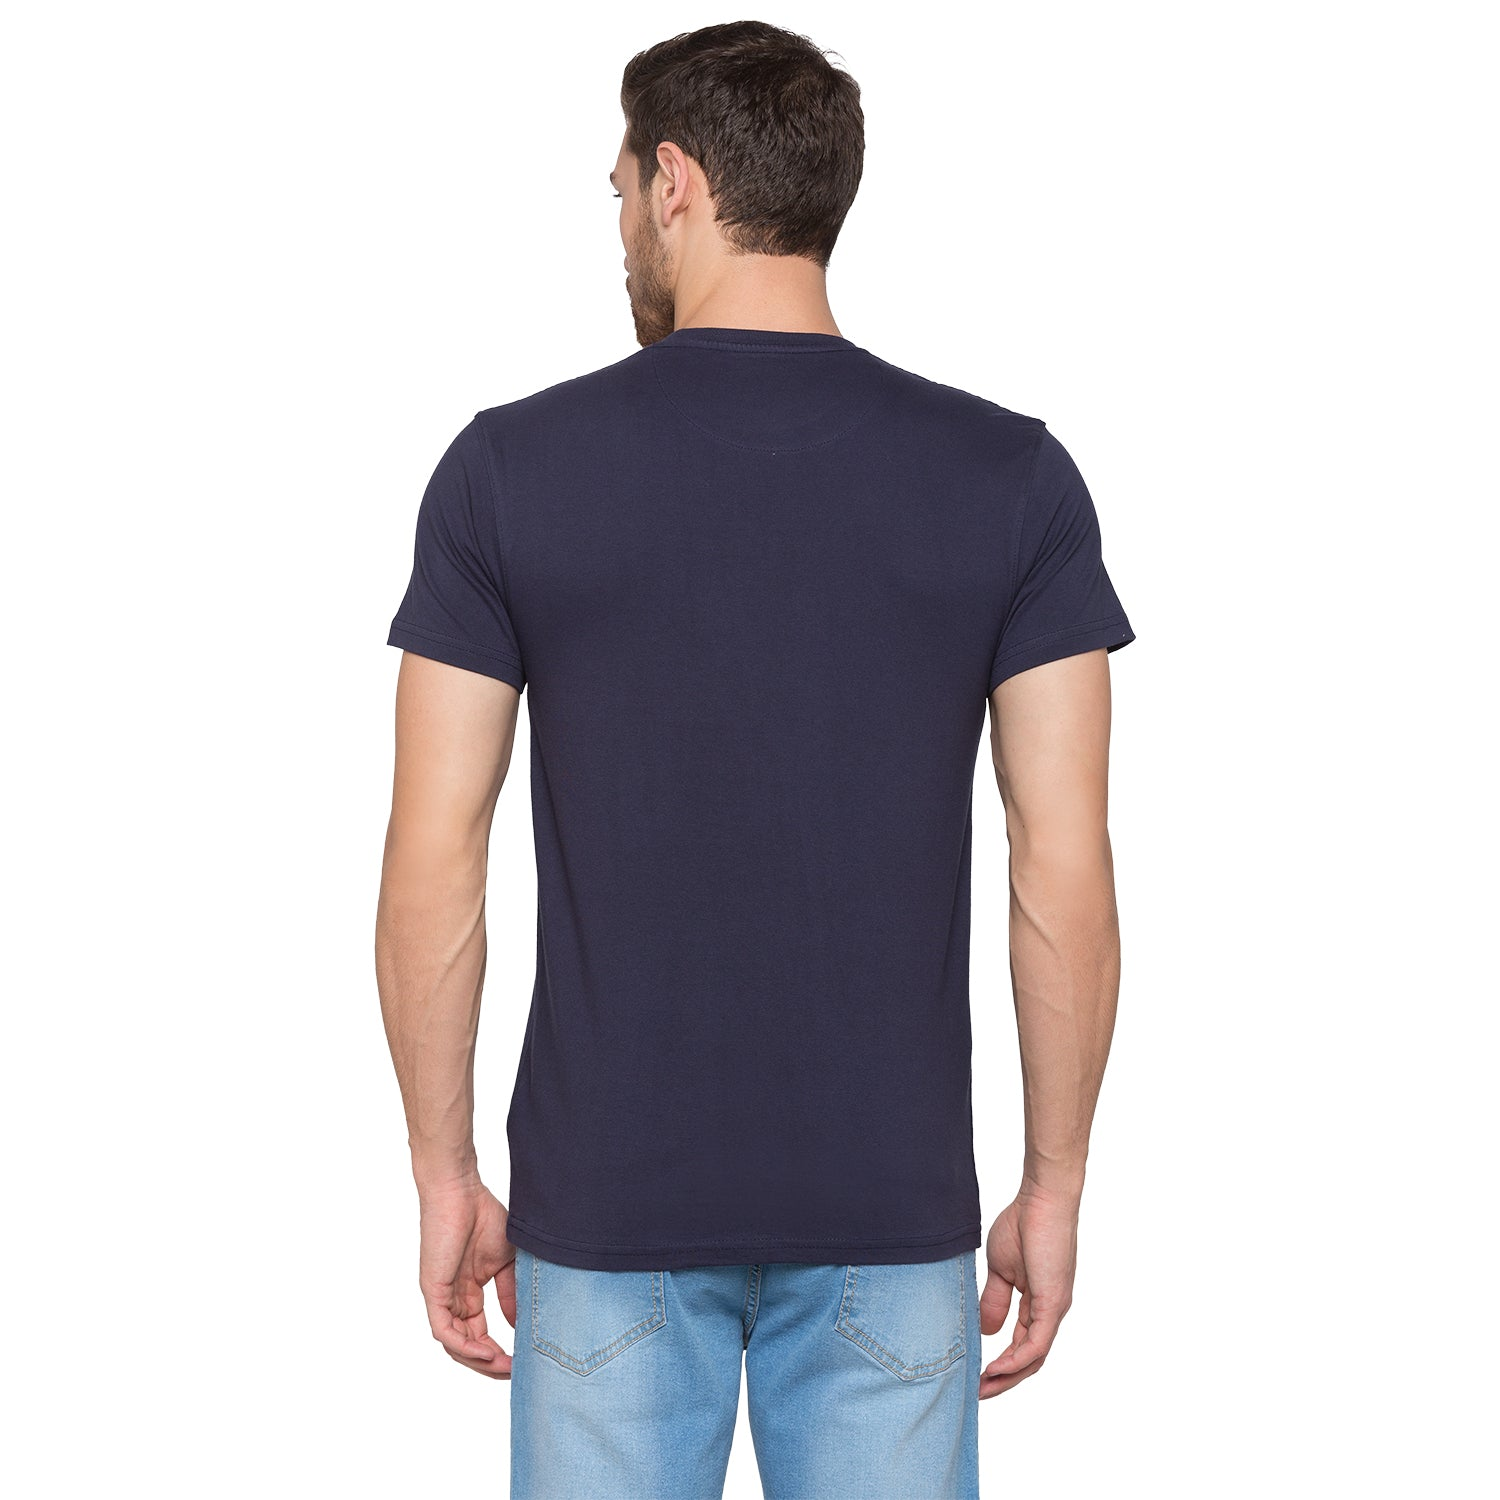 Globus Navy Blue Typography T-Shirt3